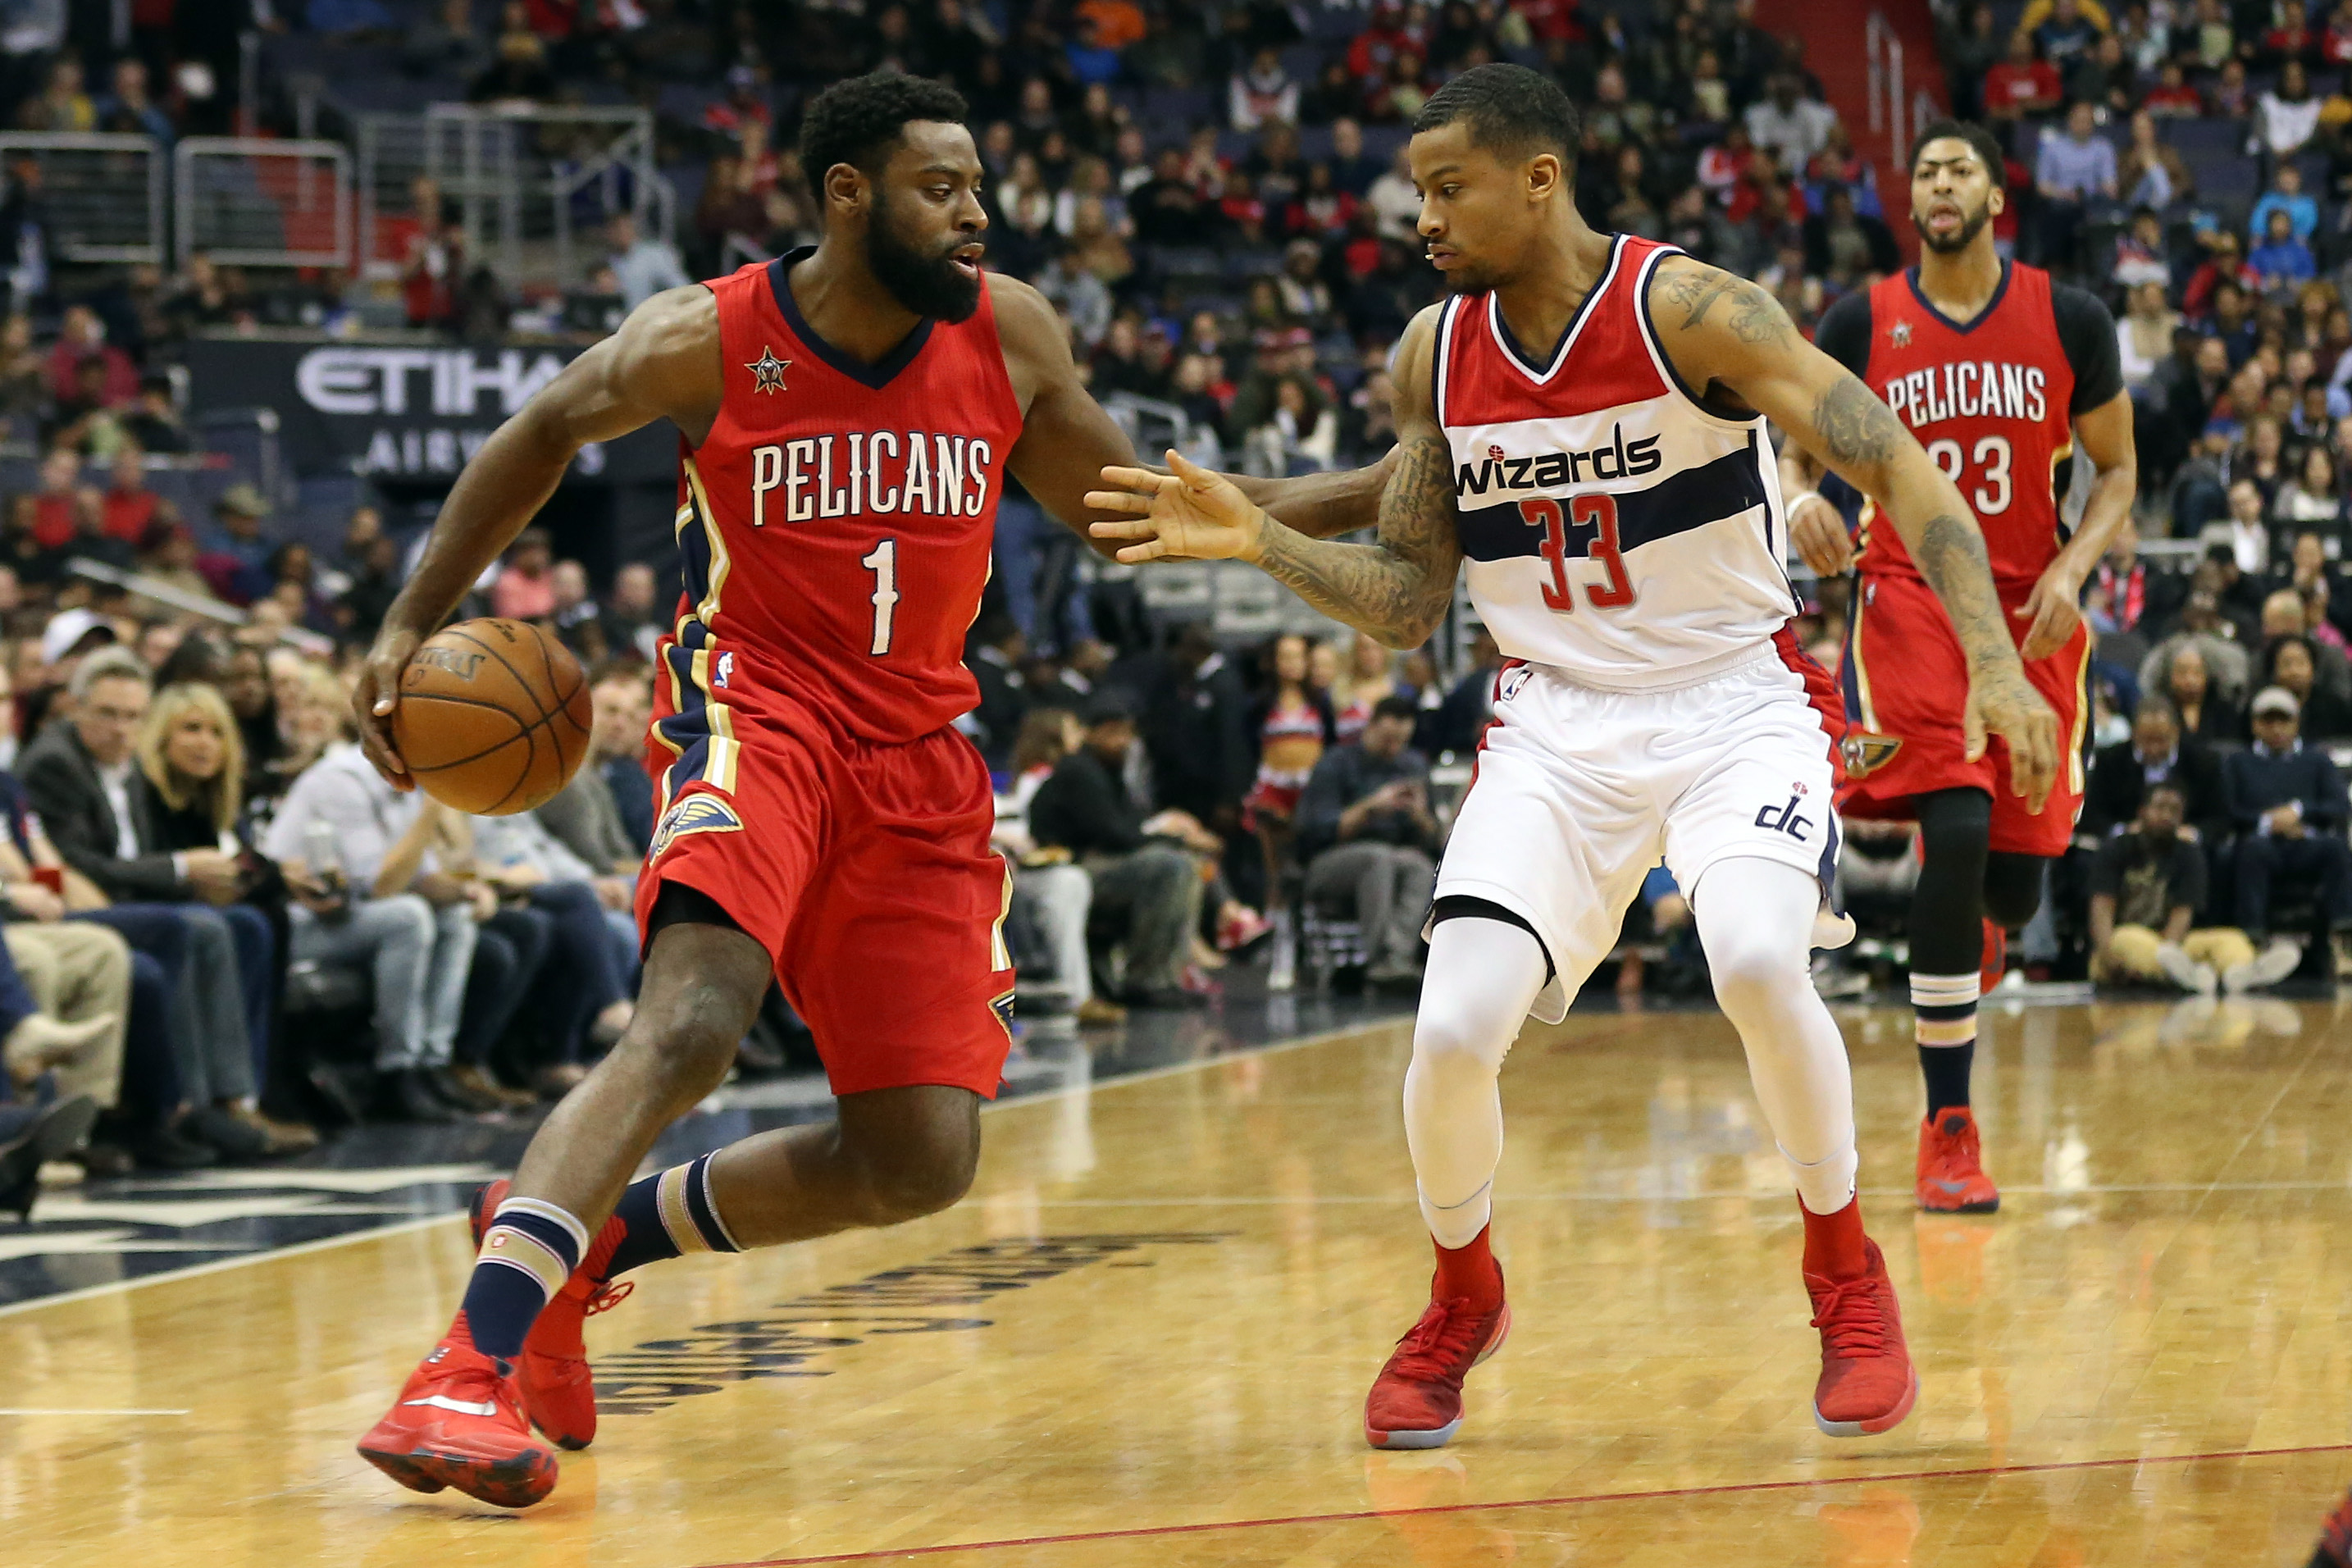 9859677-nba-new-orleans-pelicans-at-washington-wizards